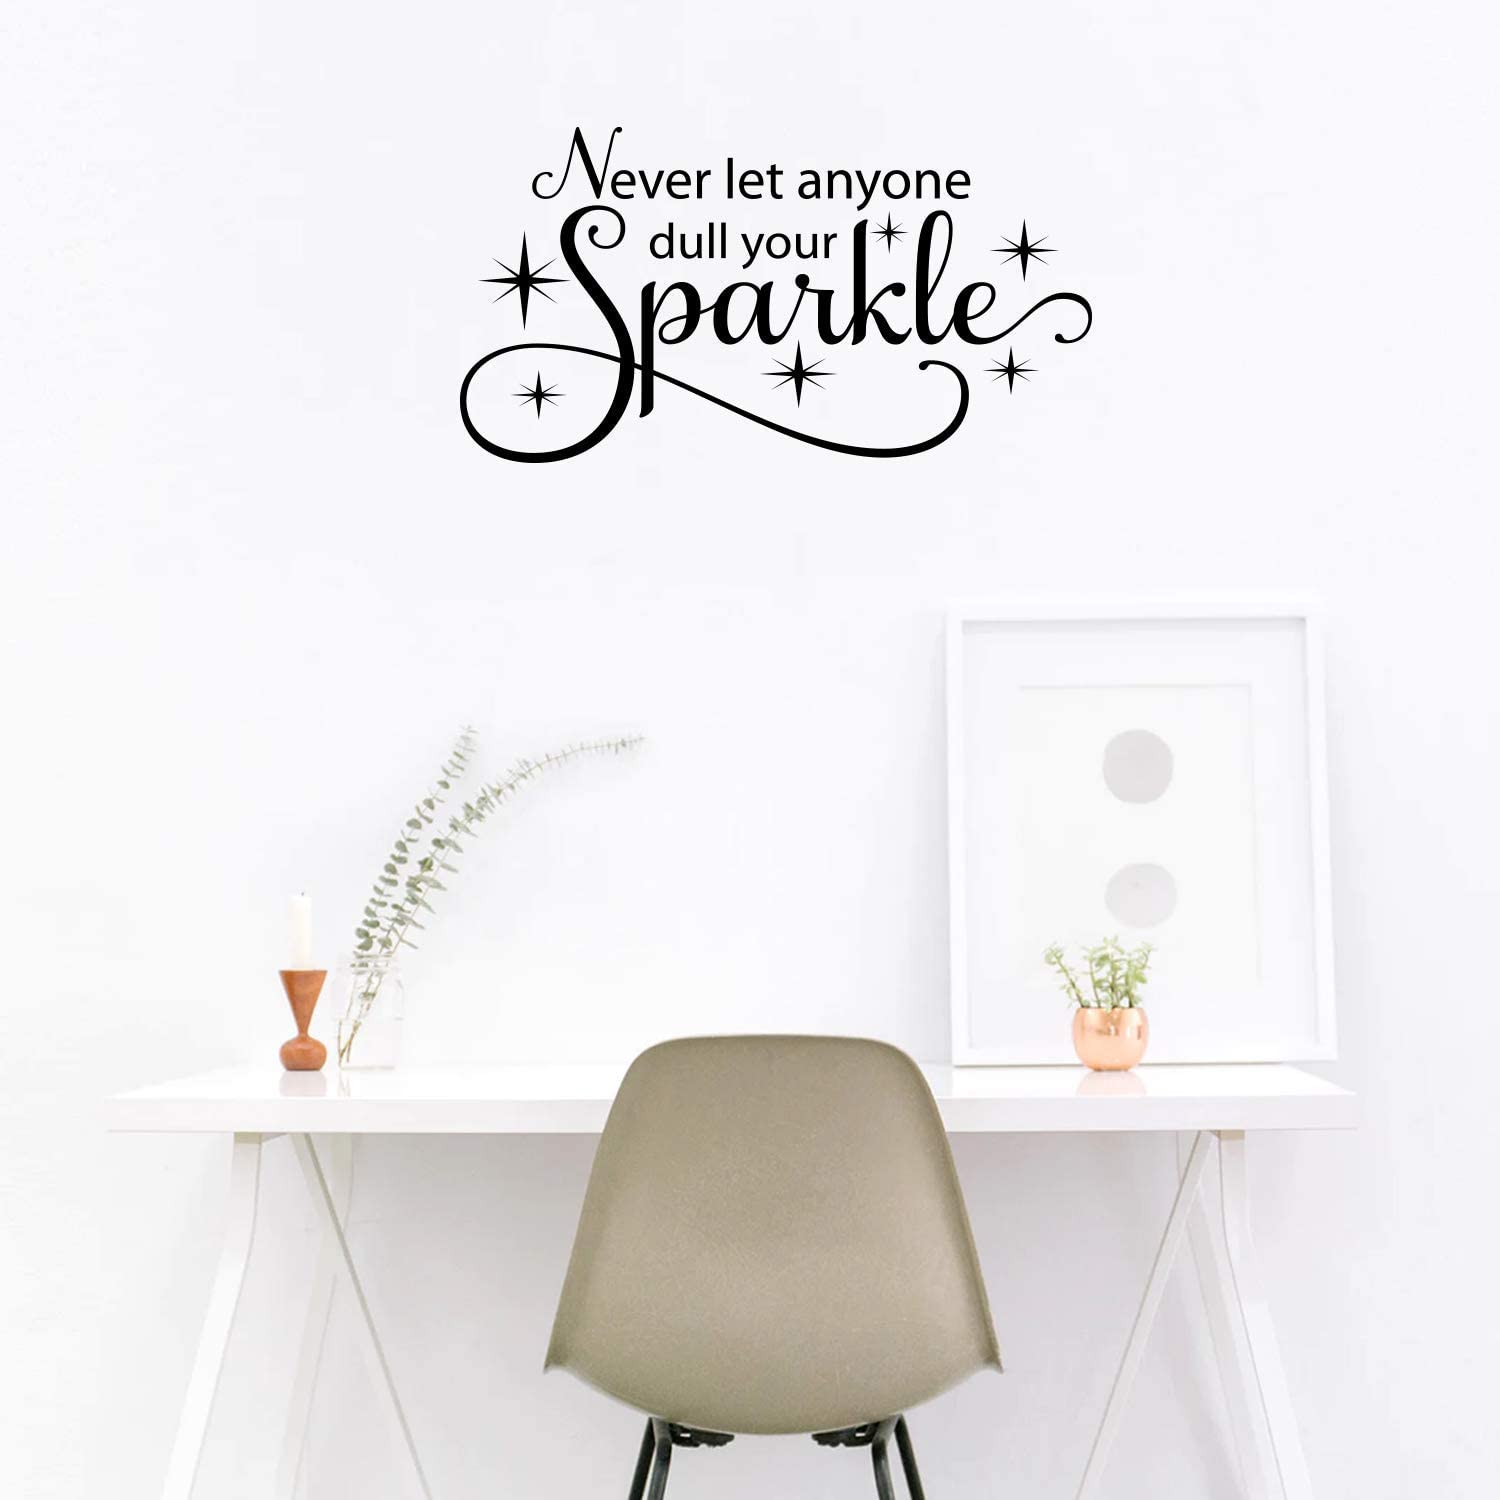 Never Let Anyone Dull Your Sparkle.. with Sparkles Vinyl Wall Decal Sticker Art